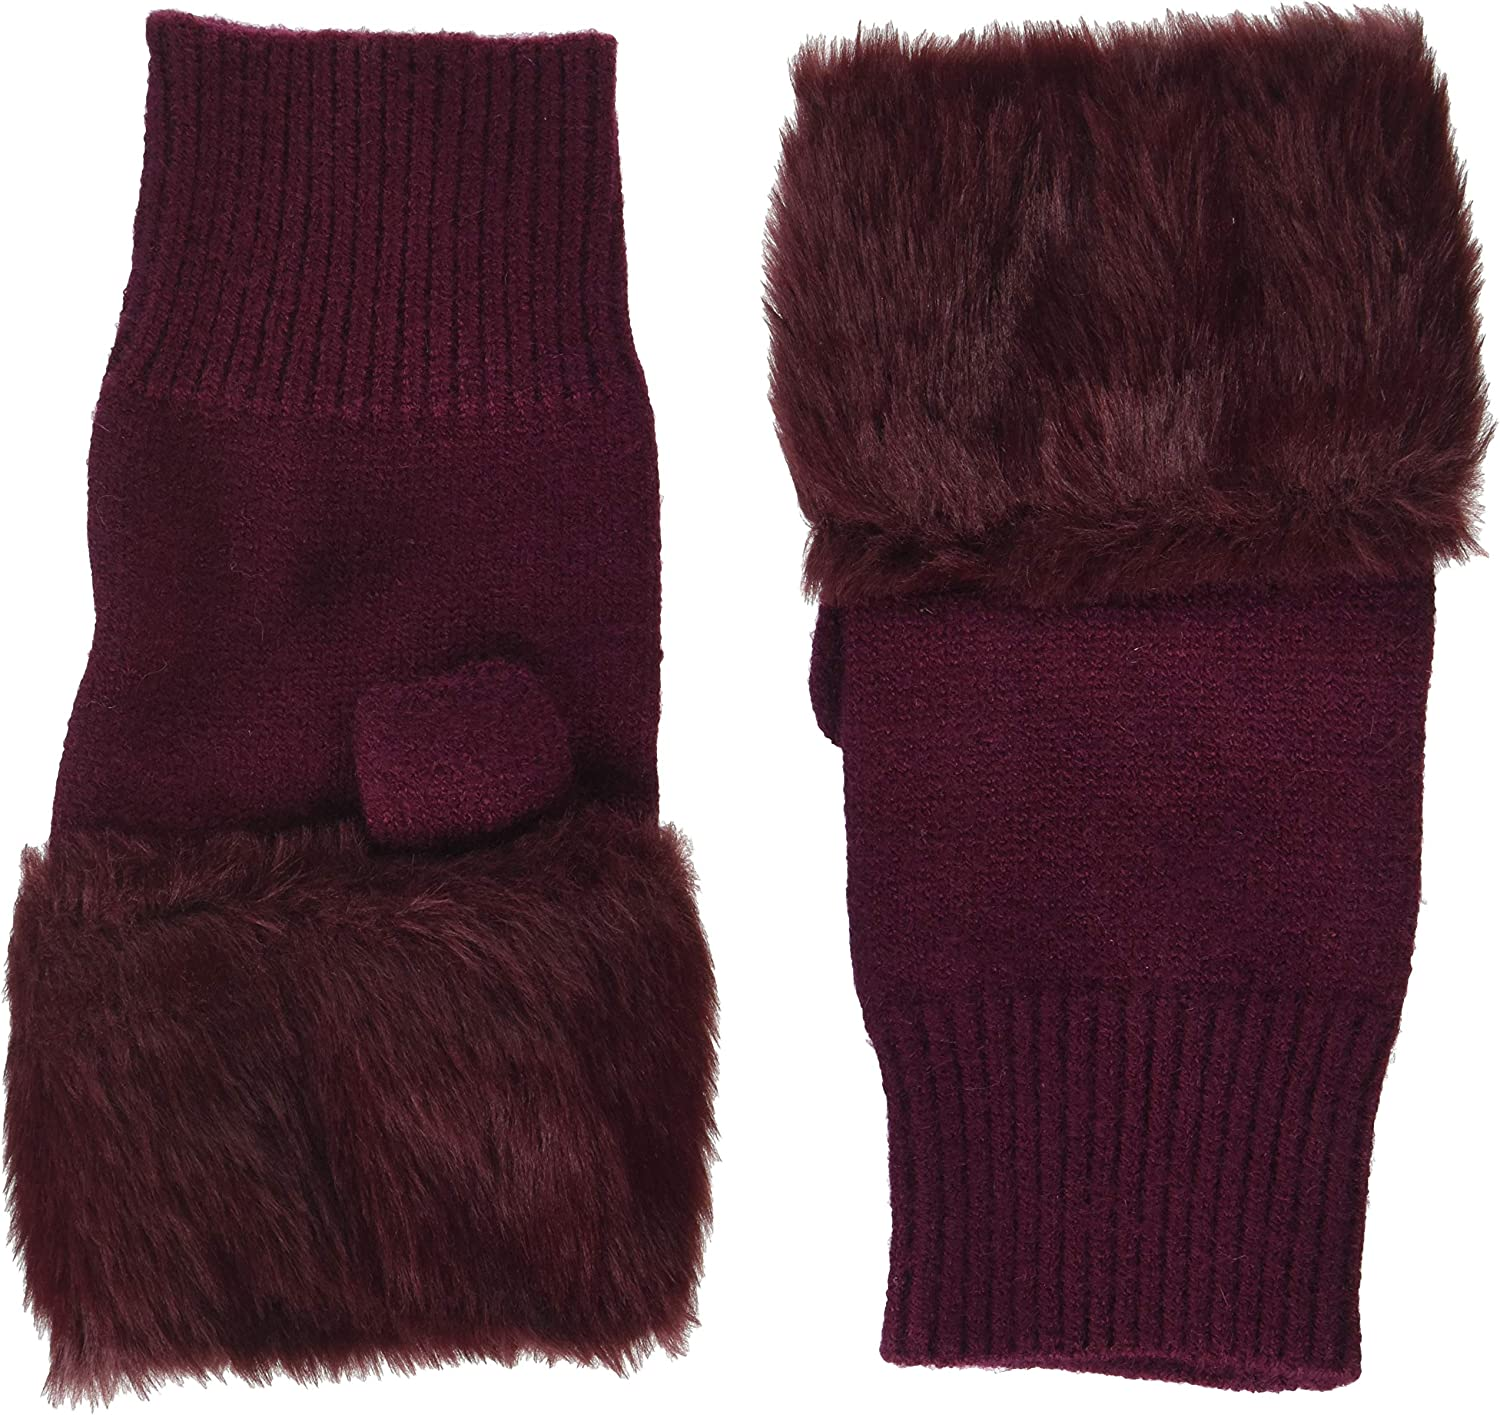 Steve Madden Women's Fur Hand Warmer with Solid